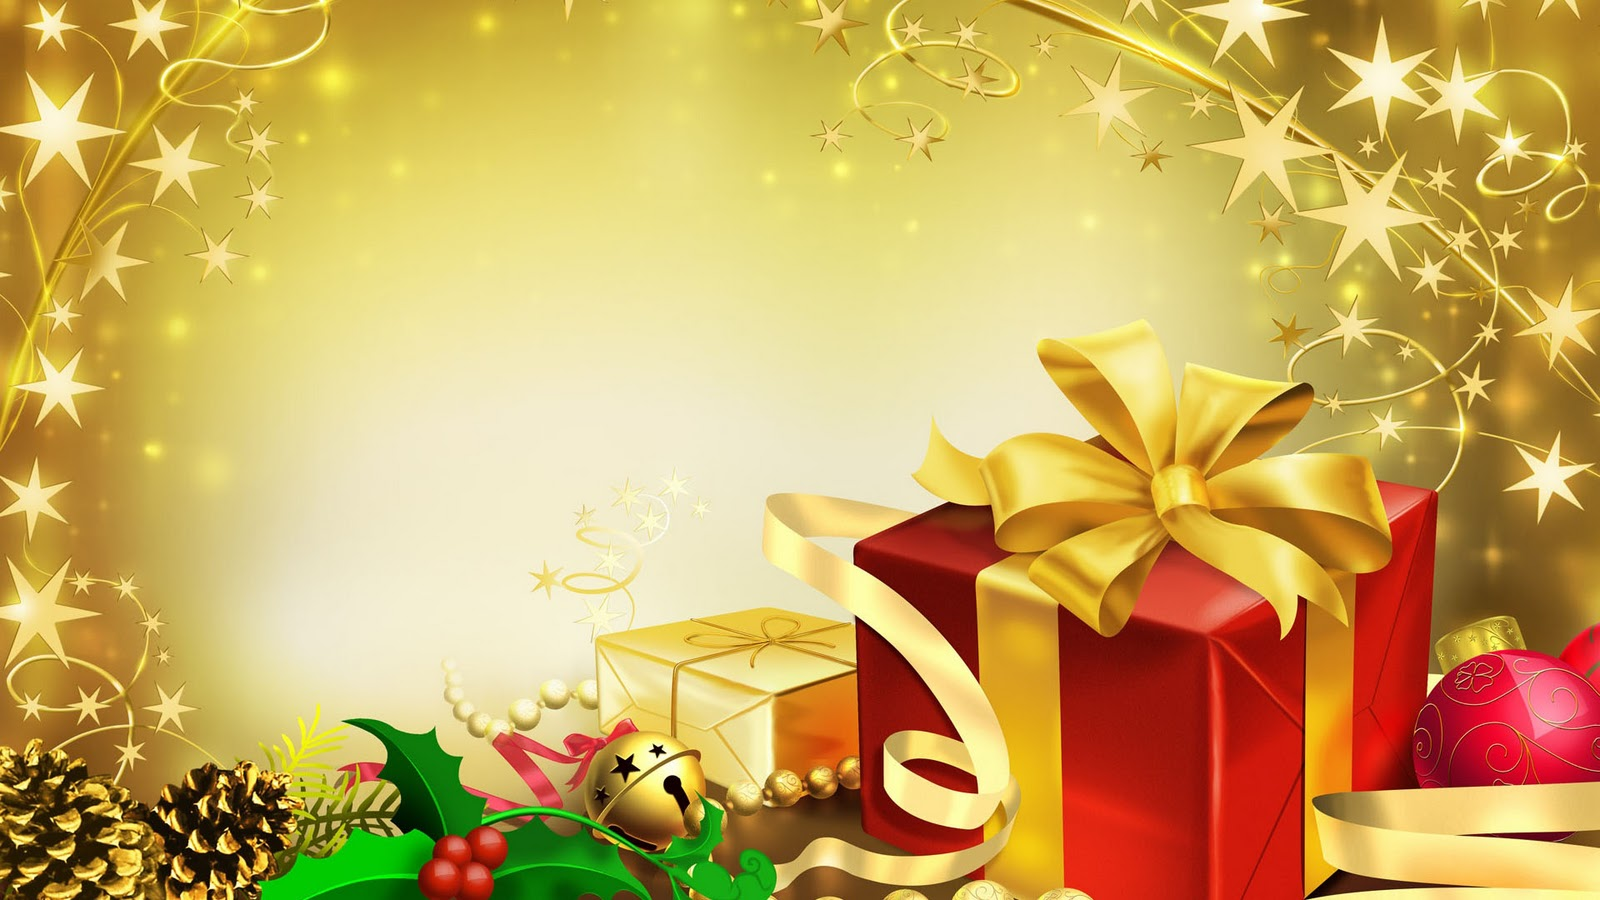 Gifts Border Christmas PPT Backgrounds